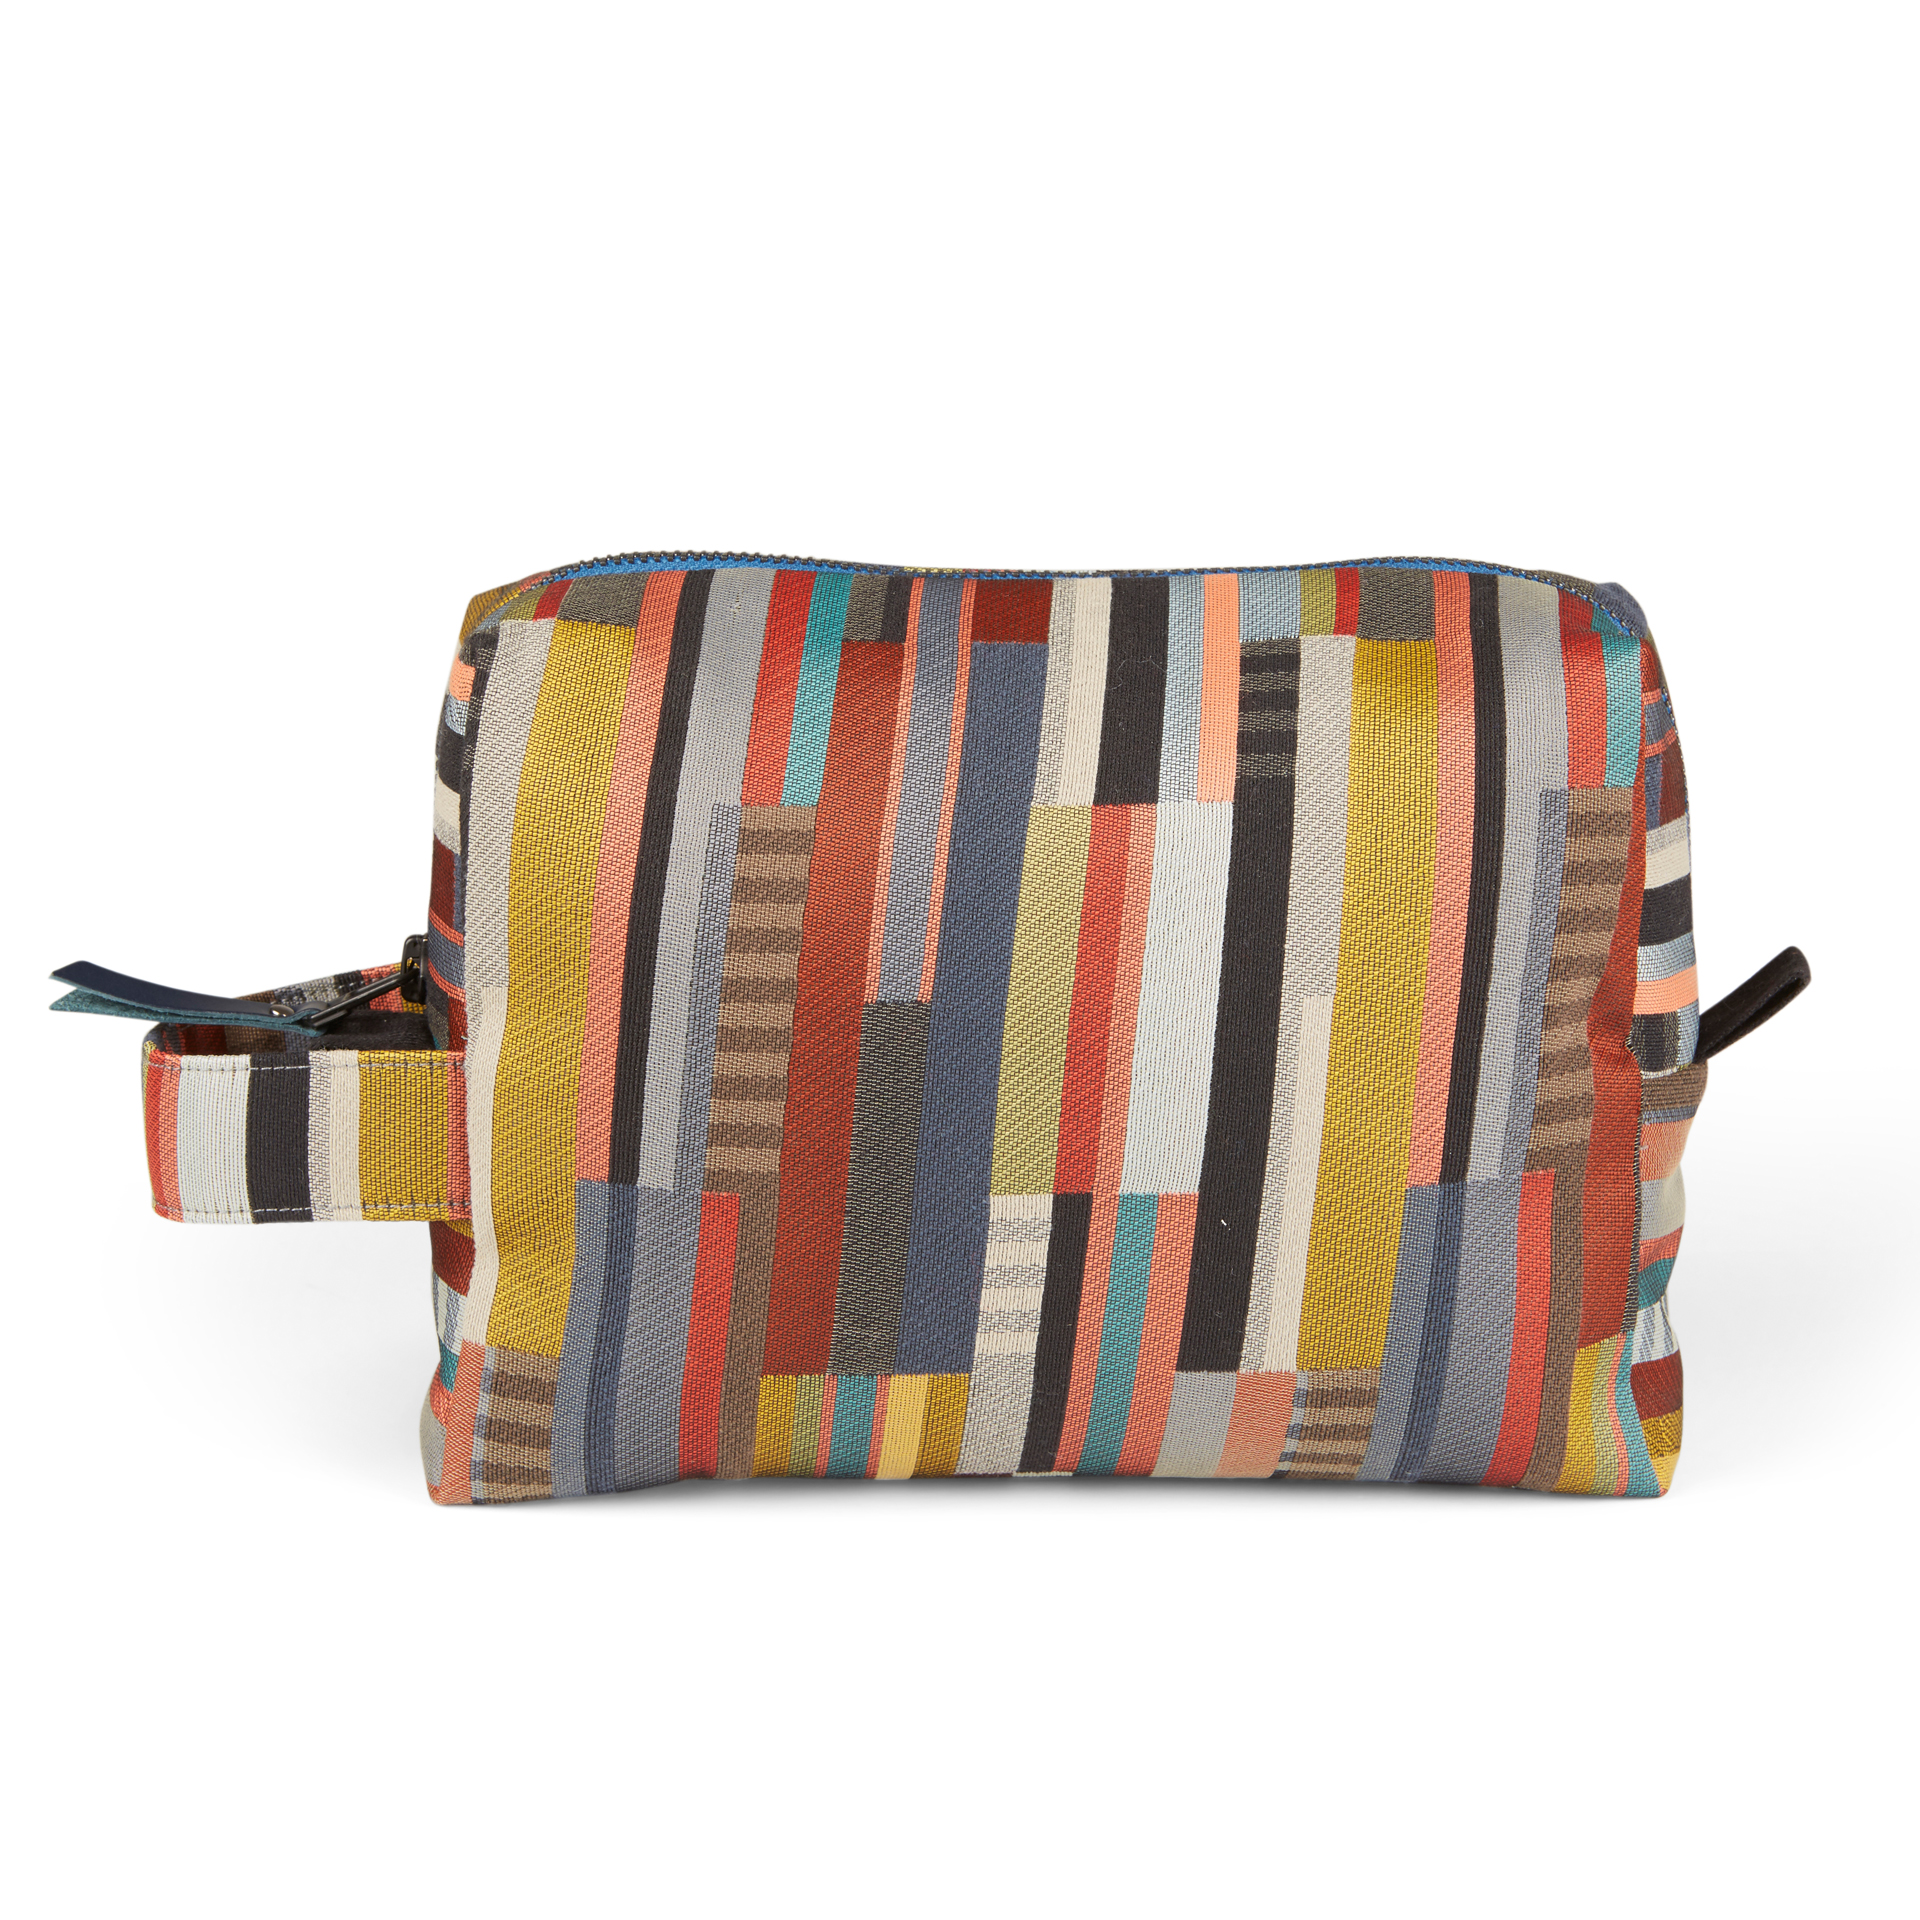 Cubitt Toiletry Bag - Multi